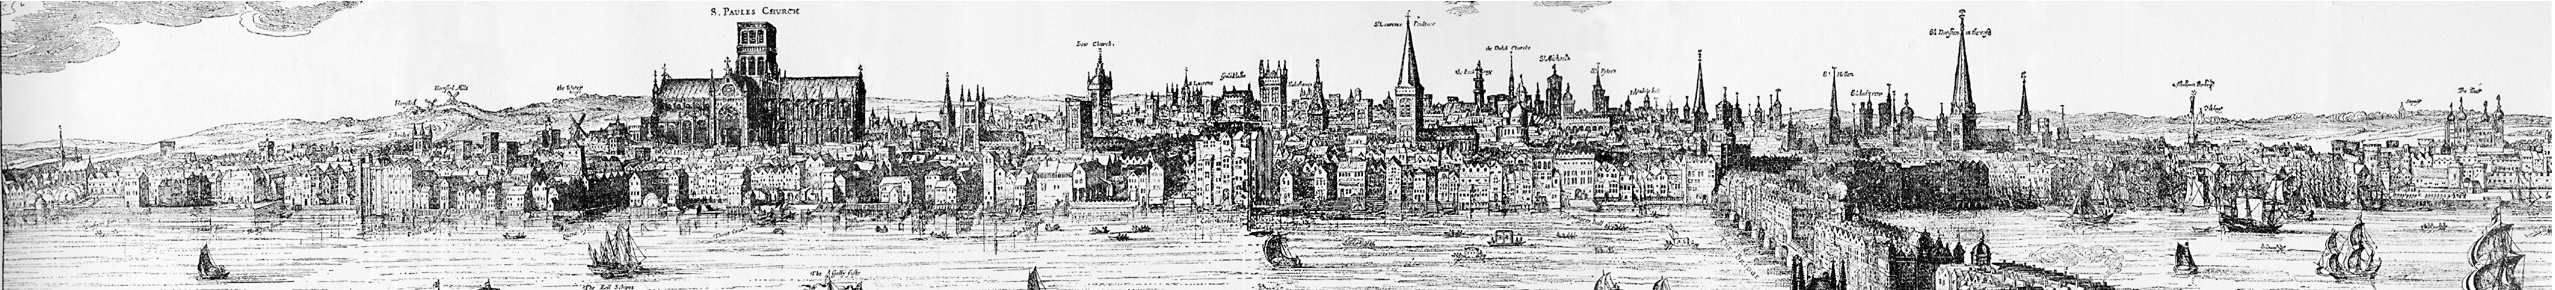 Panorama of London by Claes Van Visscher, 1616 no angels.jpg